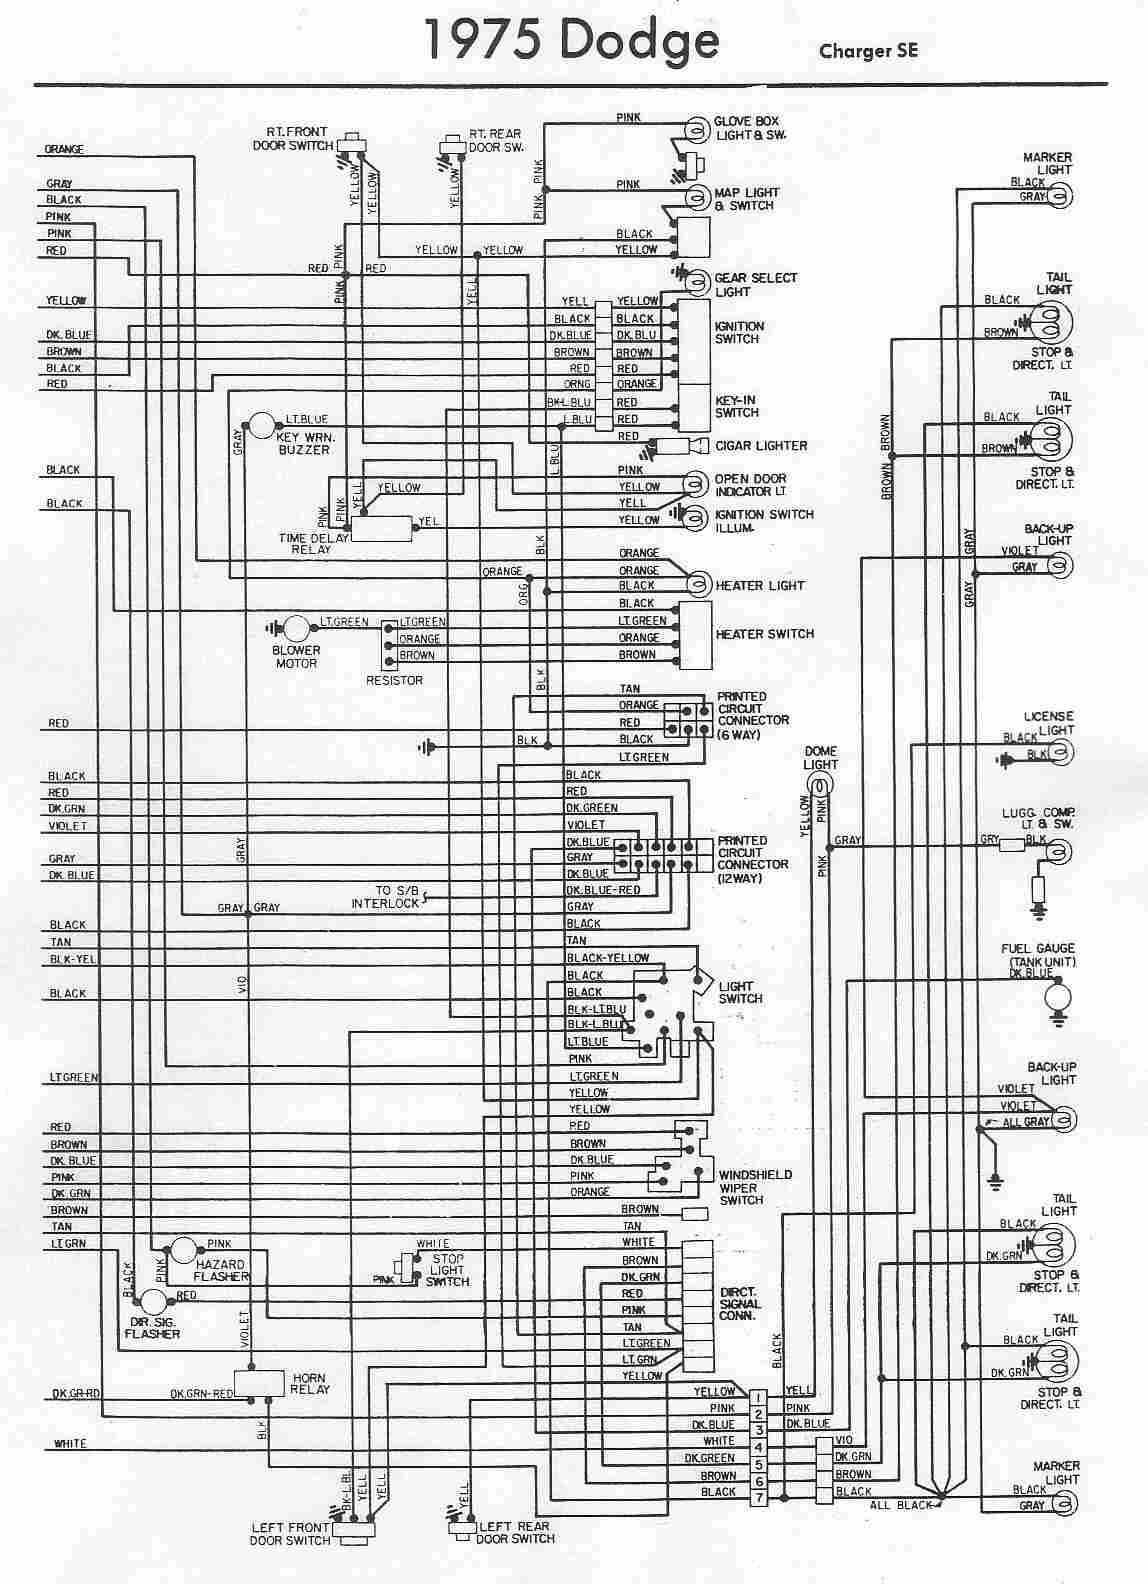 small resolution of 1977 dodge w200 wiring diagram wiring diagram new1973 dodge w200 wiring diagram wiring diagram library 1977